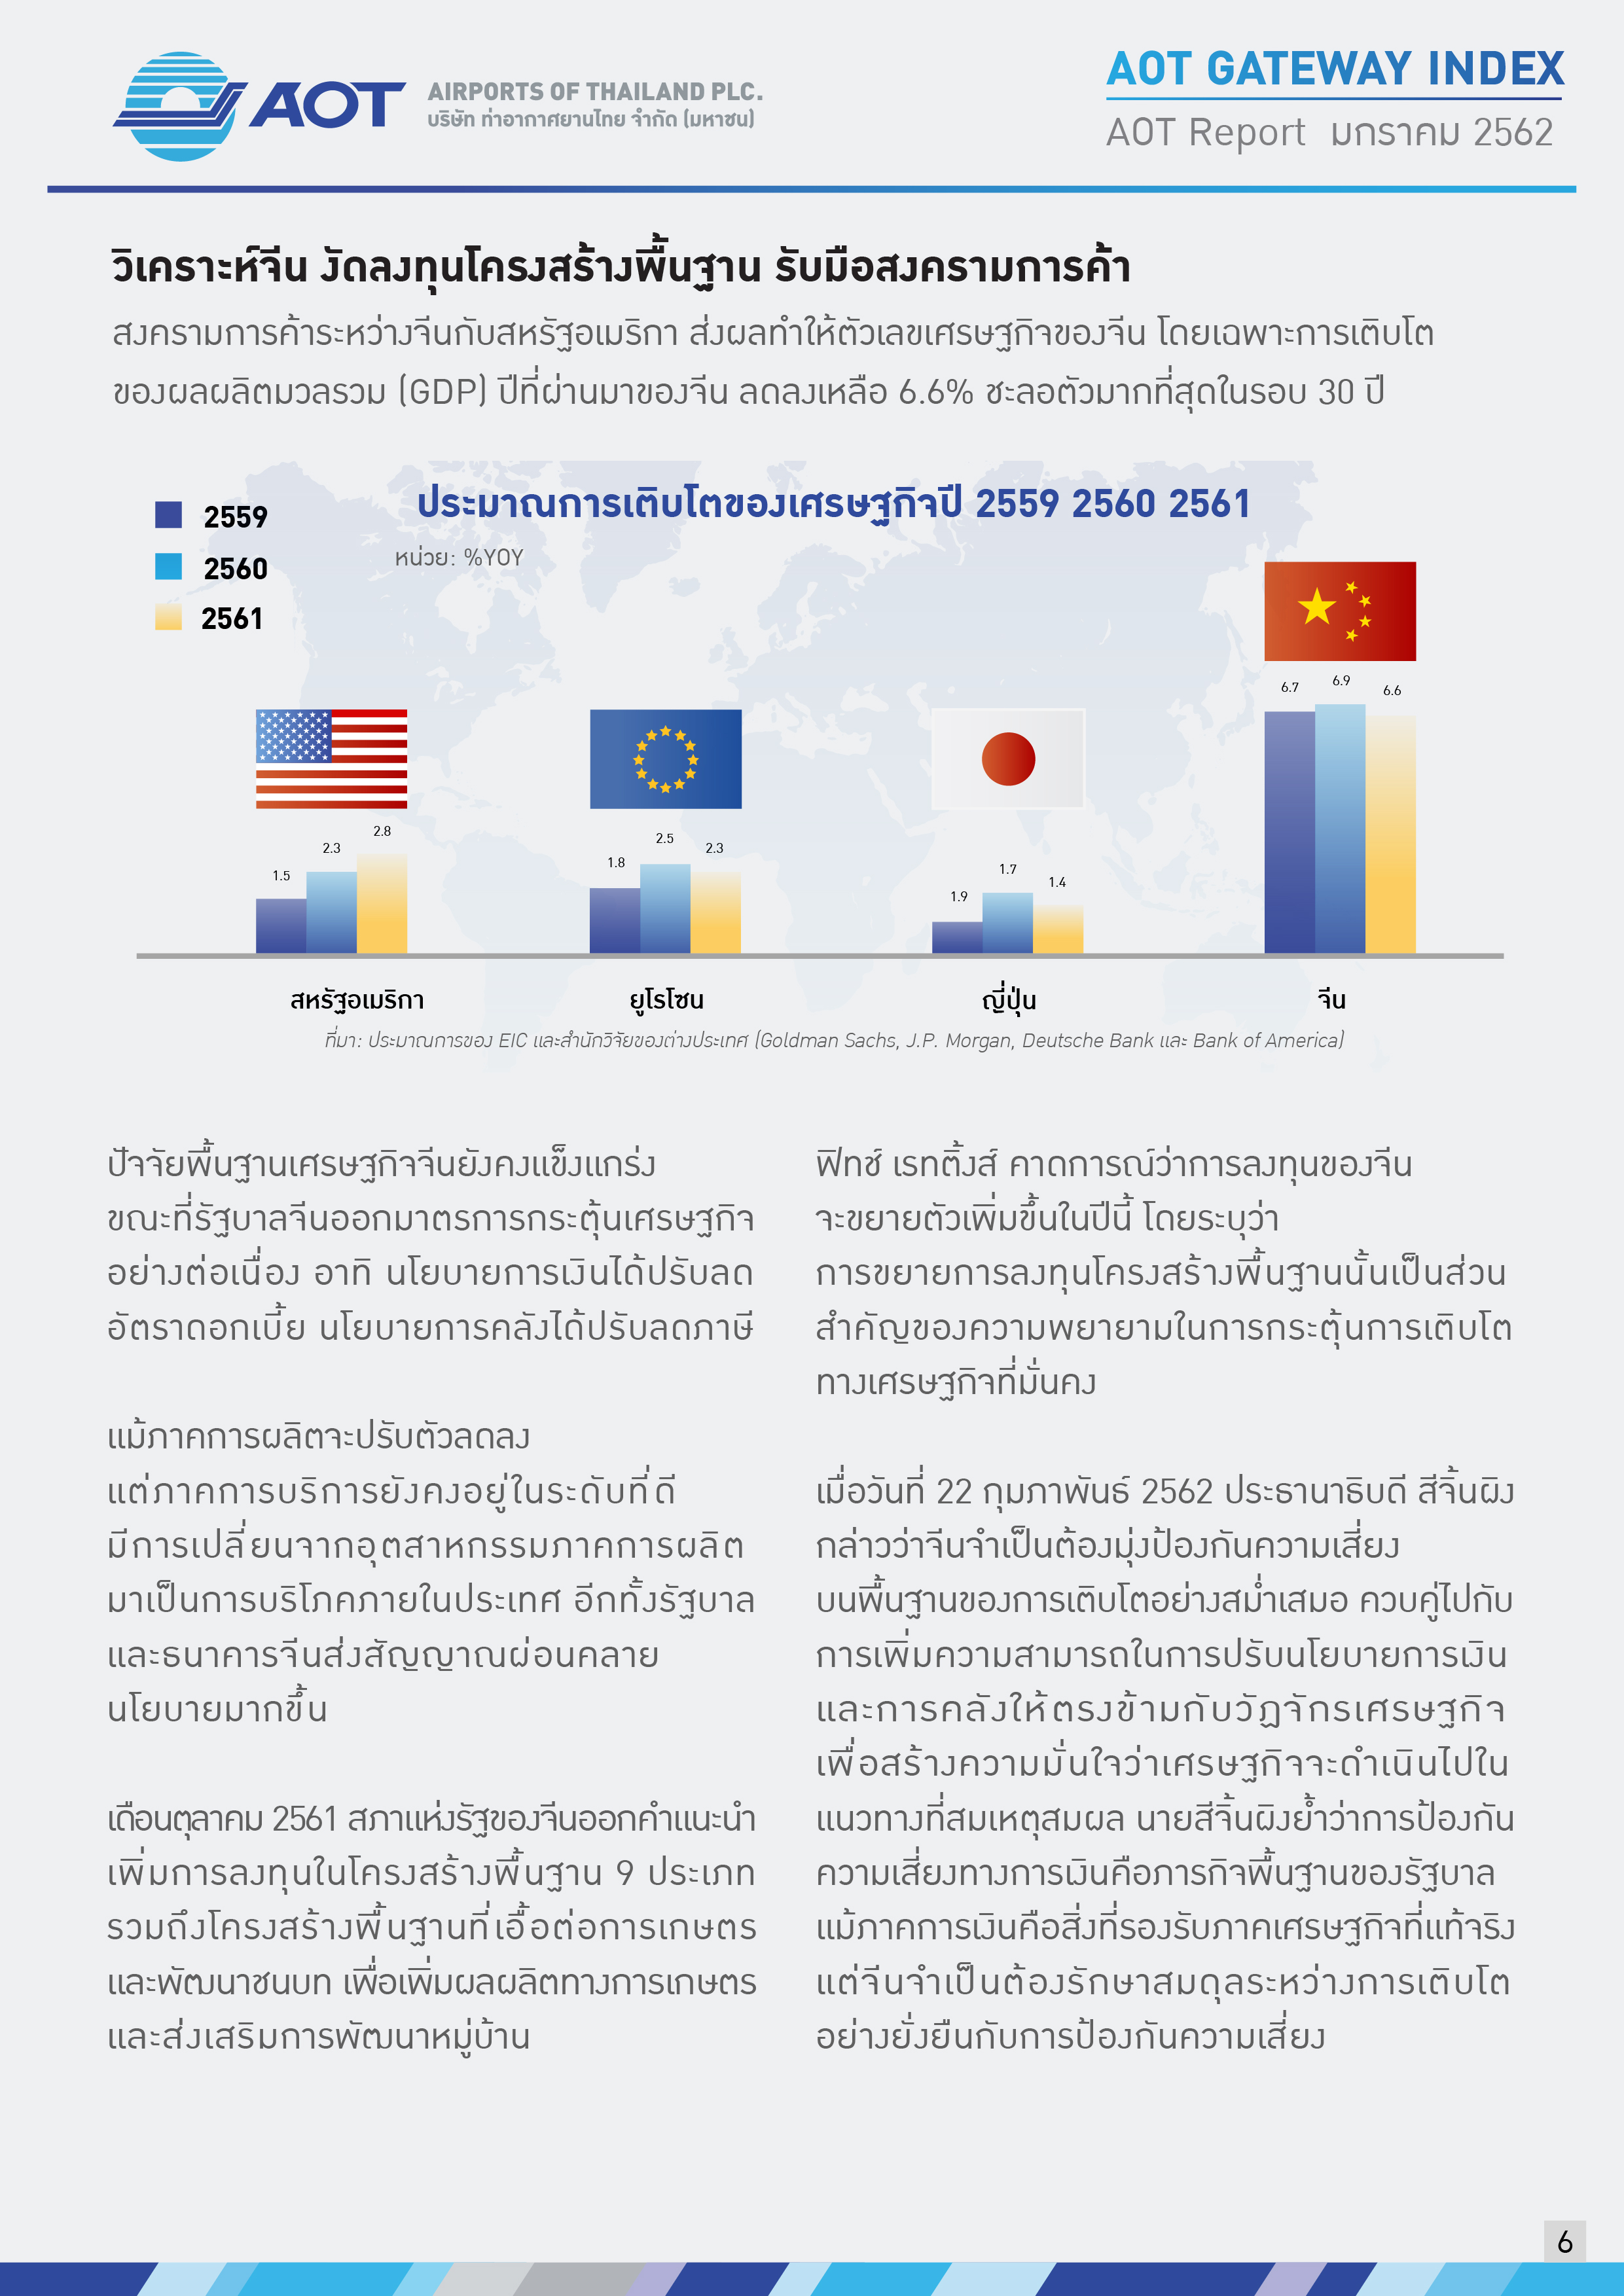 AOTcontent2019_Index_02_เศรษฐกิจโลก_V5_20190401_Page06